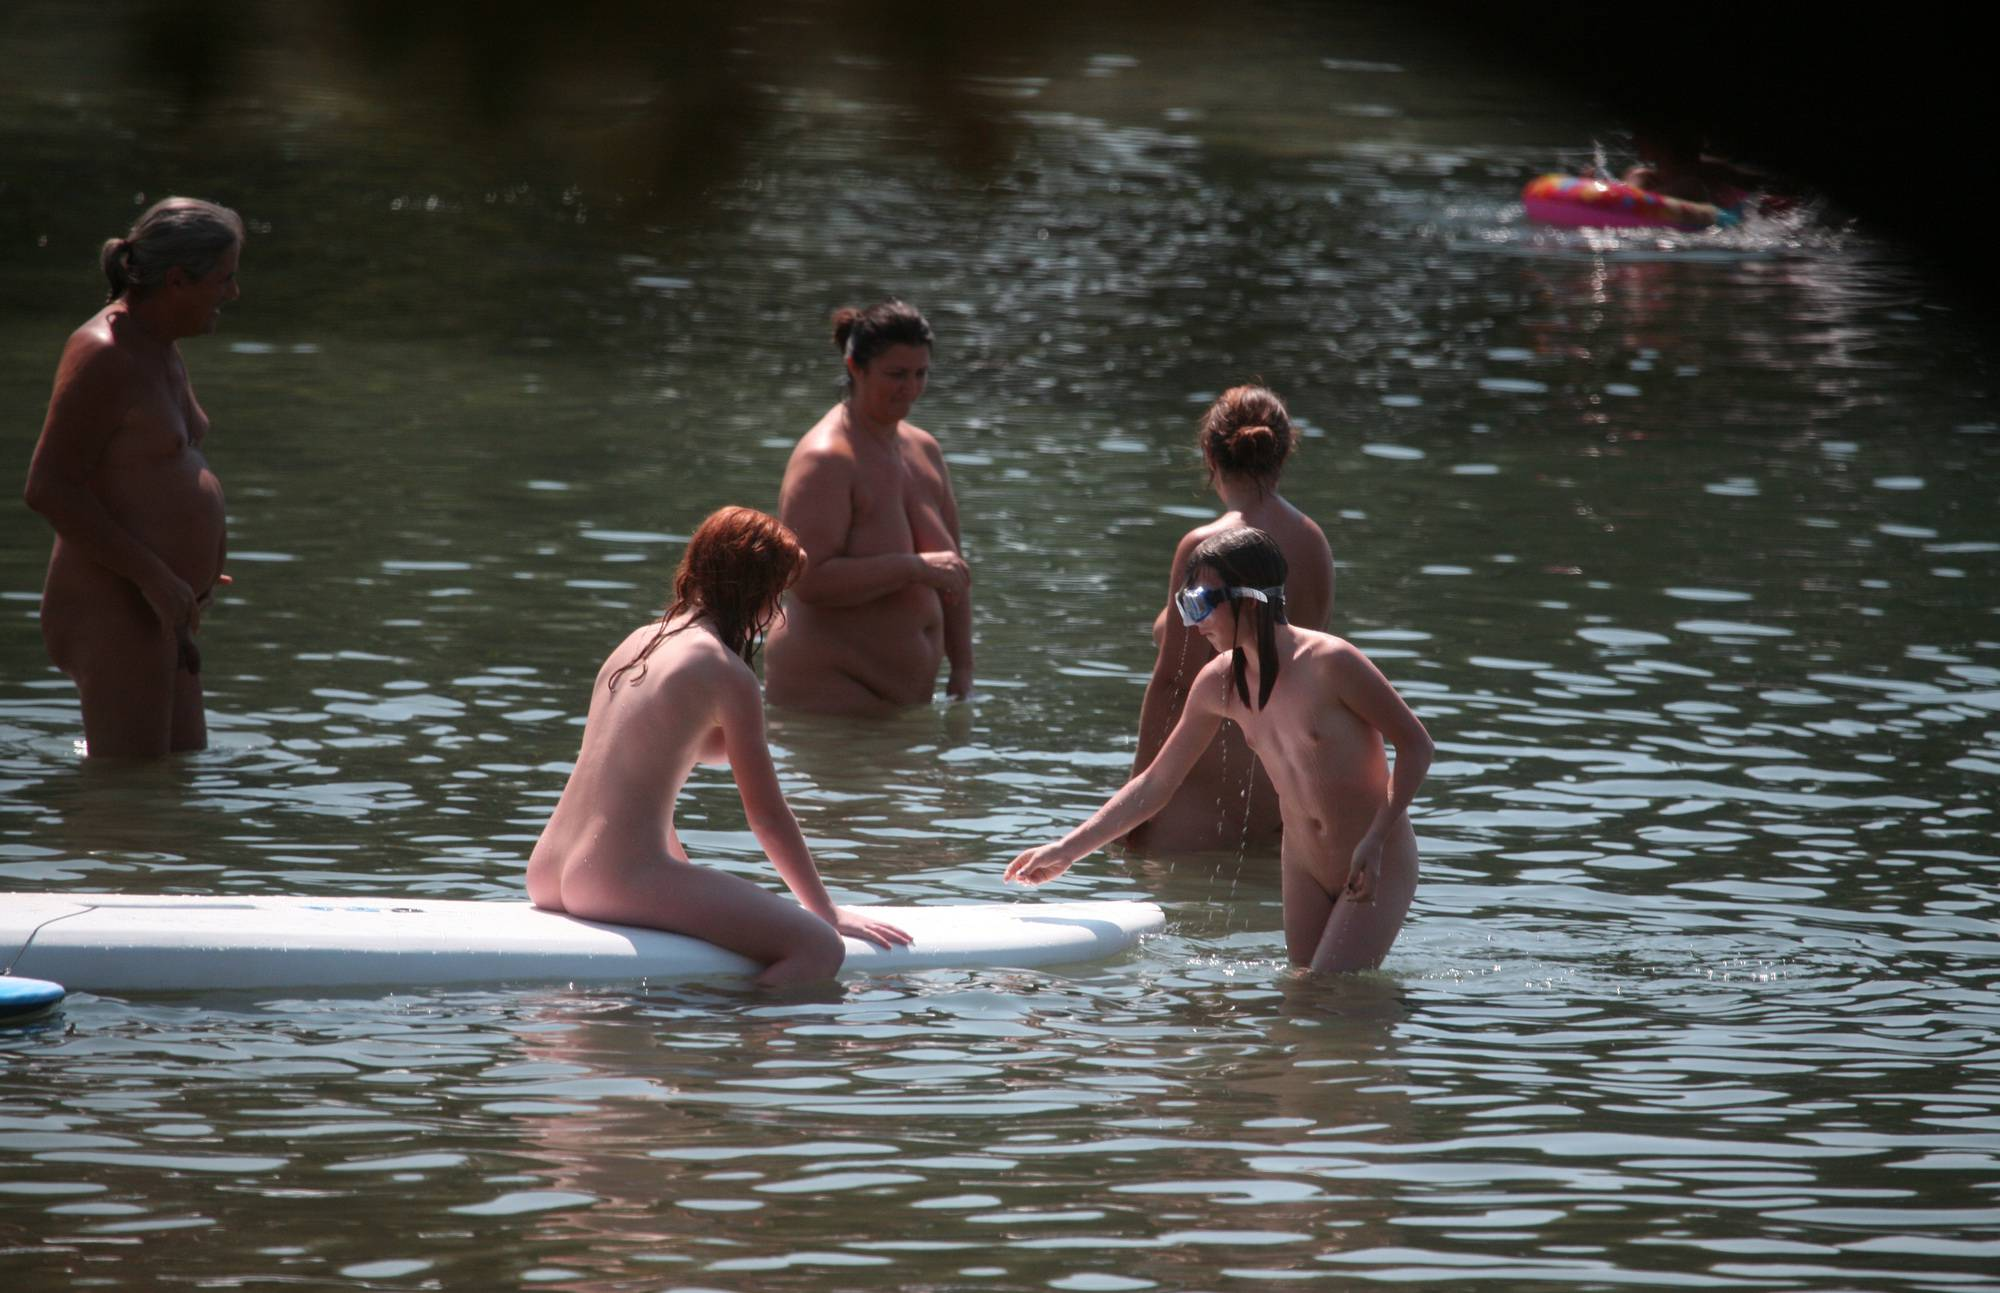 Nudist Park Canoe Waters - 3